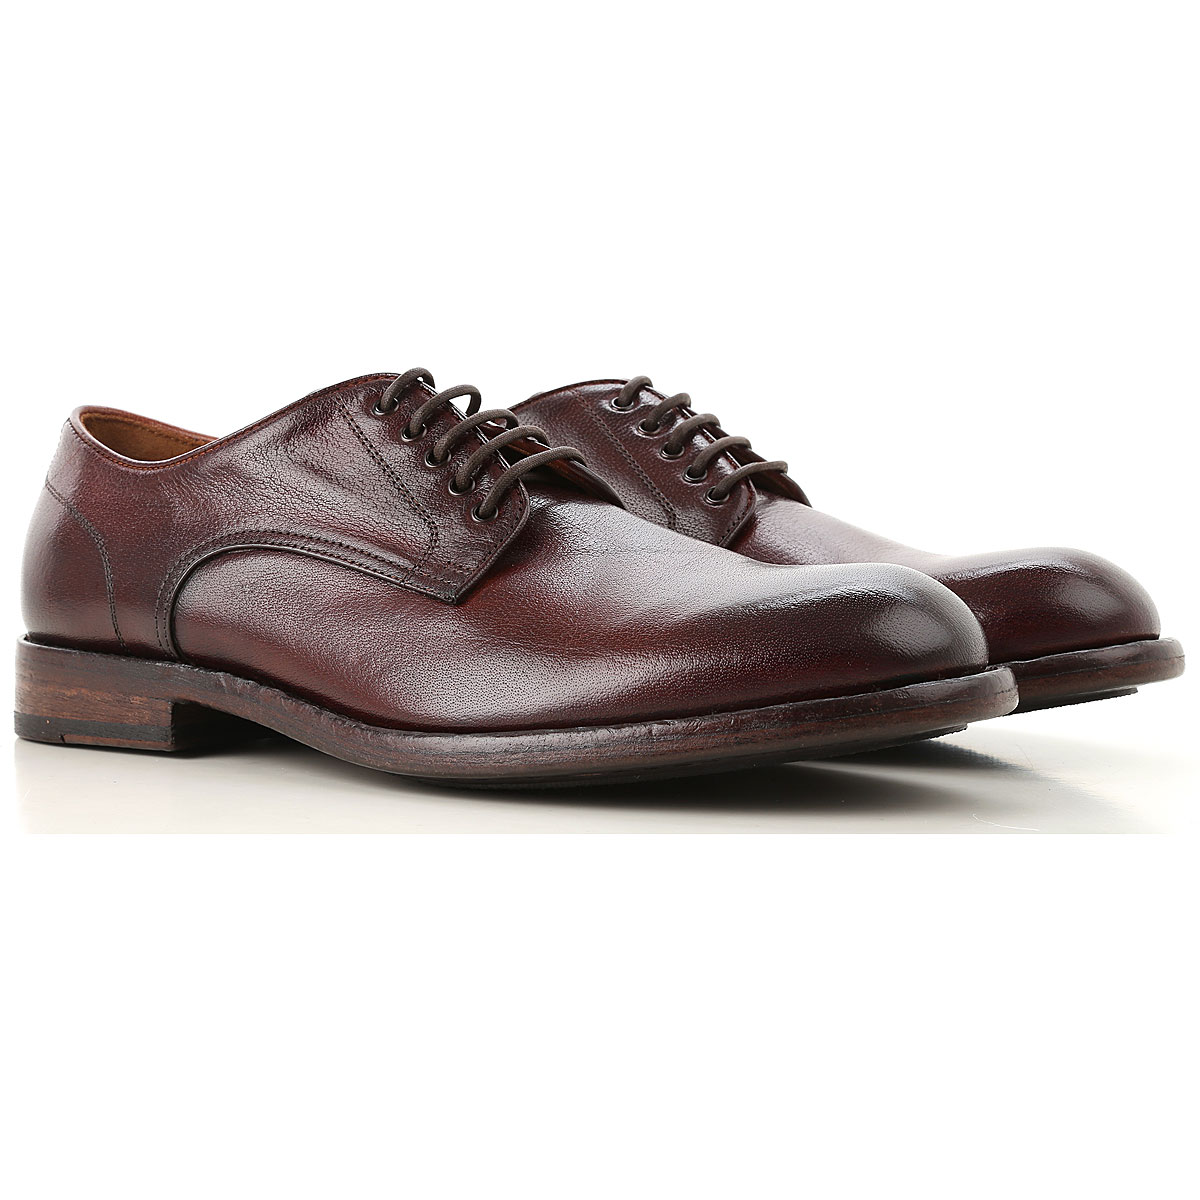 Image of Pantanetti Lace Up Shoes for Men Oxfords, Derbies and Brogues, Dark Leather Brown, Leather, 2017, 10 10.5 7.5 8 9